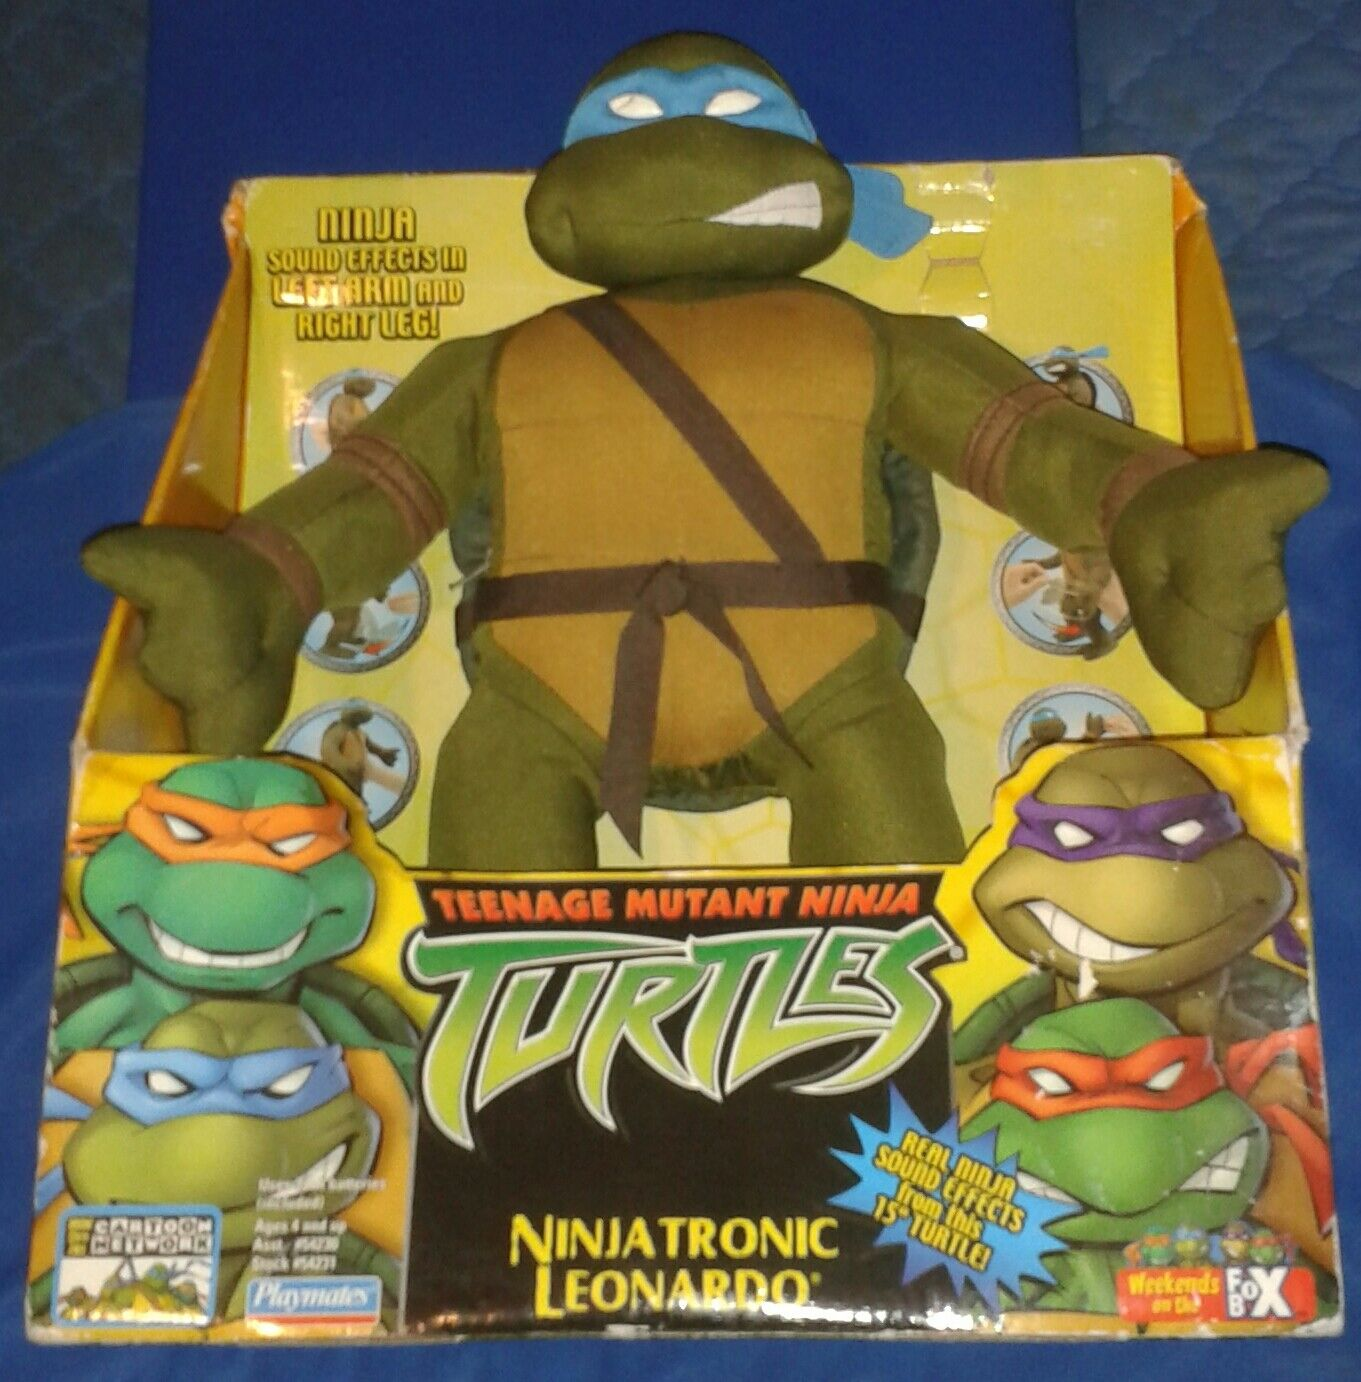 2004  GIANT NINJATRONIC LEO LEONARDO MIB  TEENAGE MUTANT NINJA TURTLES